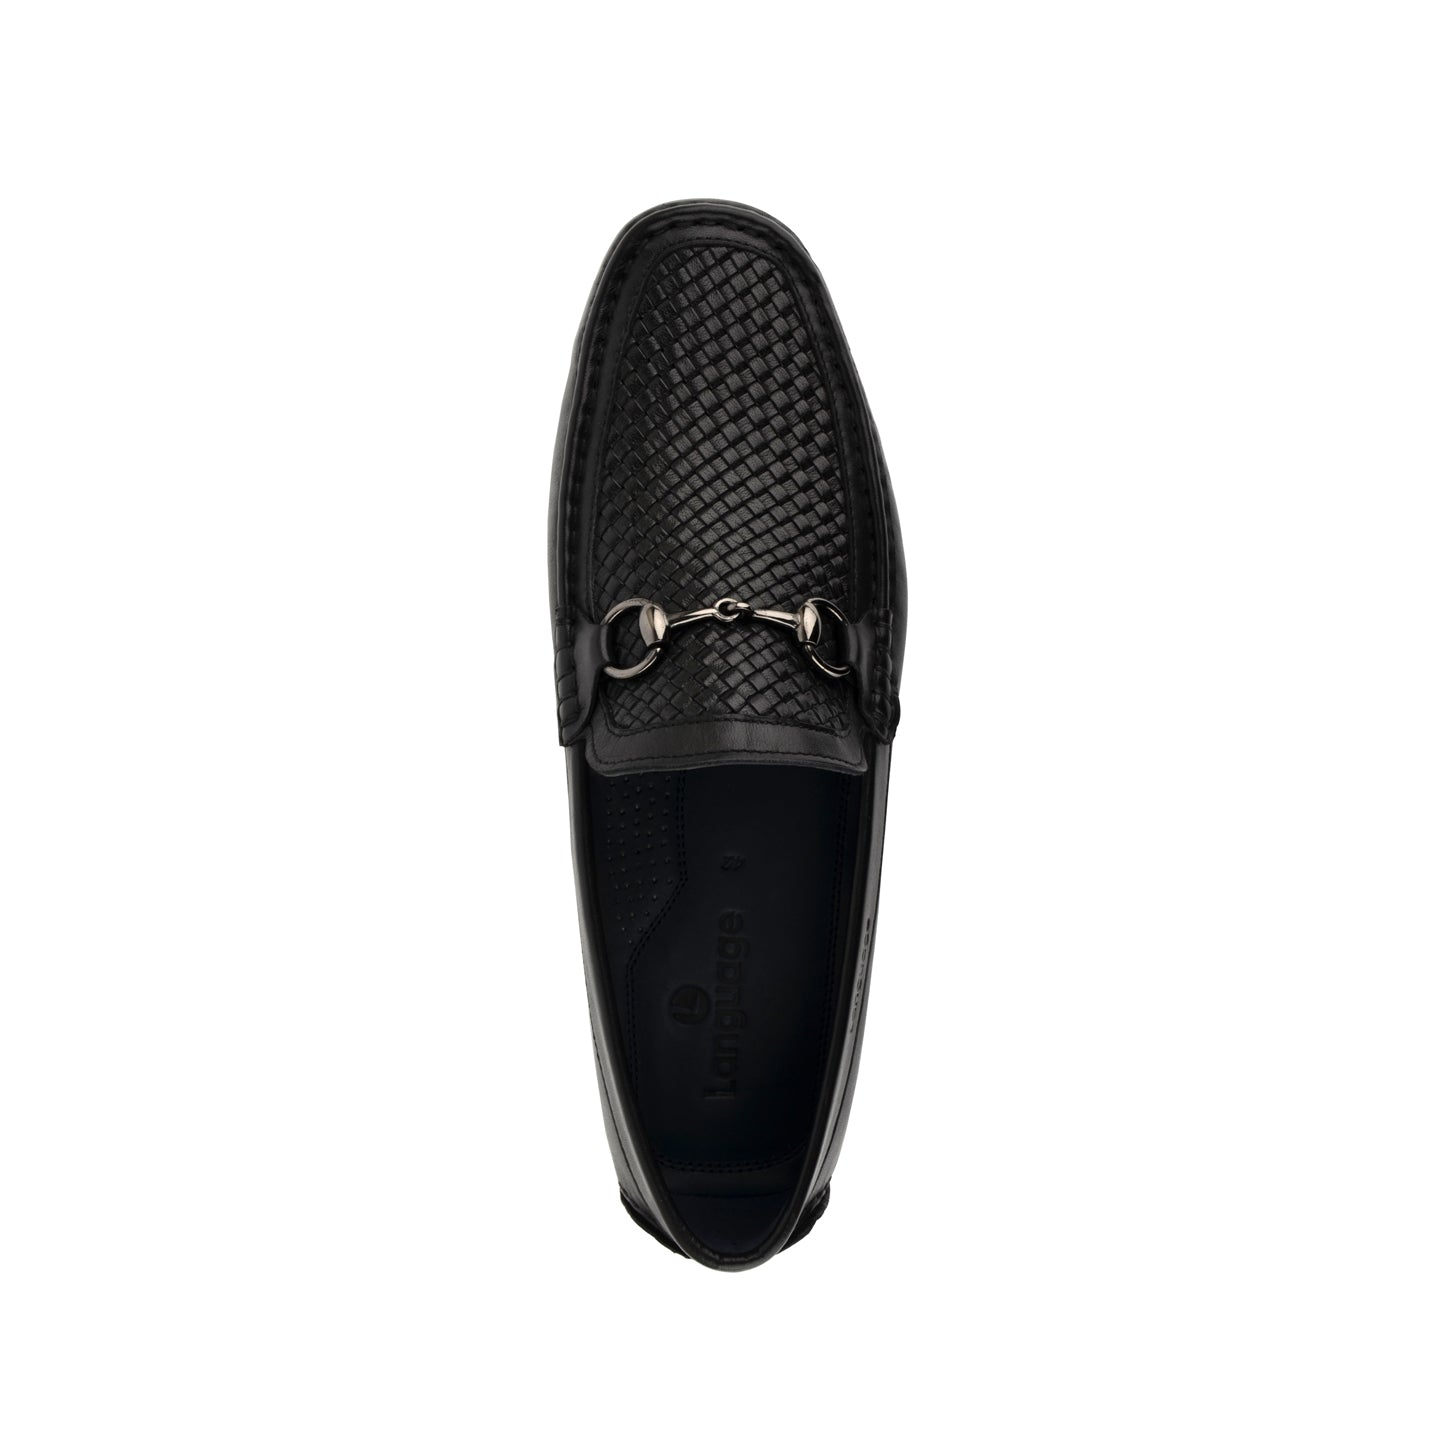 LM592 - Language Goya Men's Casuals Black Drivers